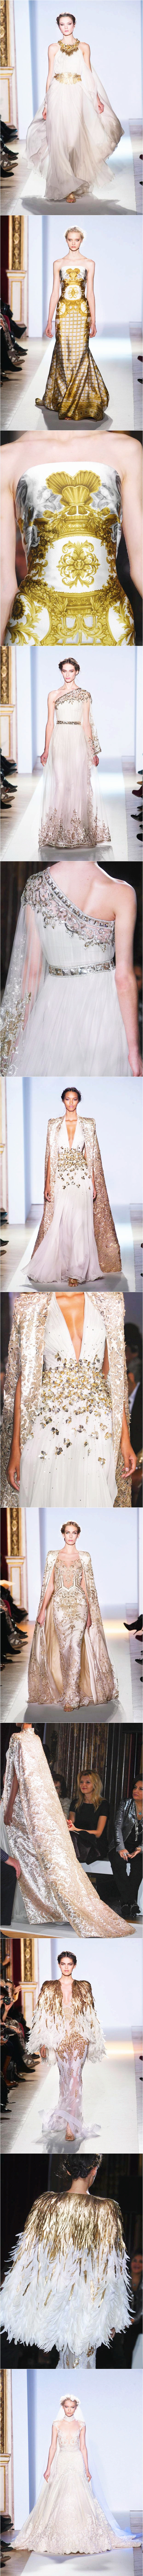 Battrie photo Zuhair Murad Couture 2013 - Robes de soirée chic